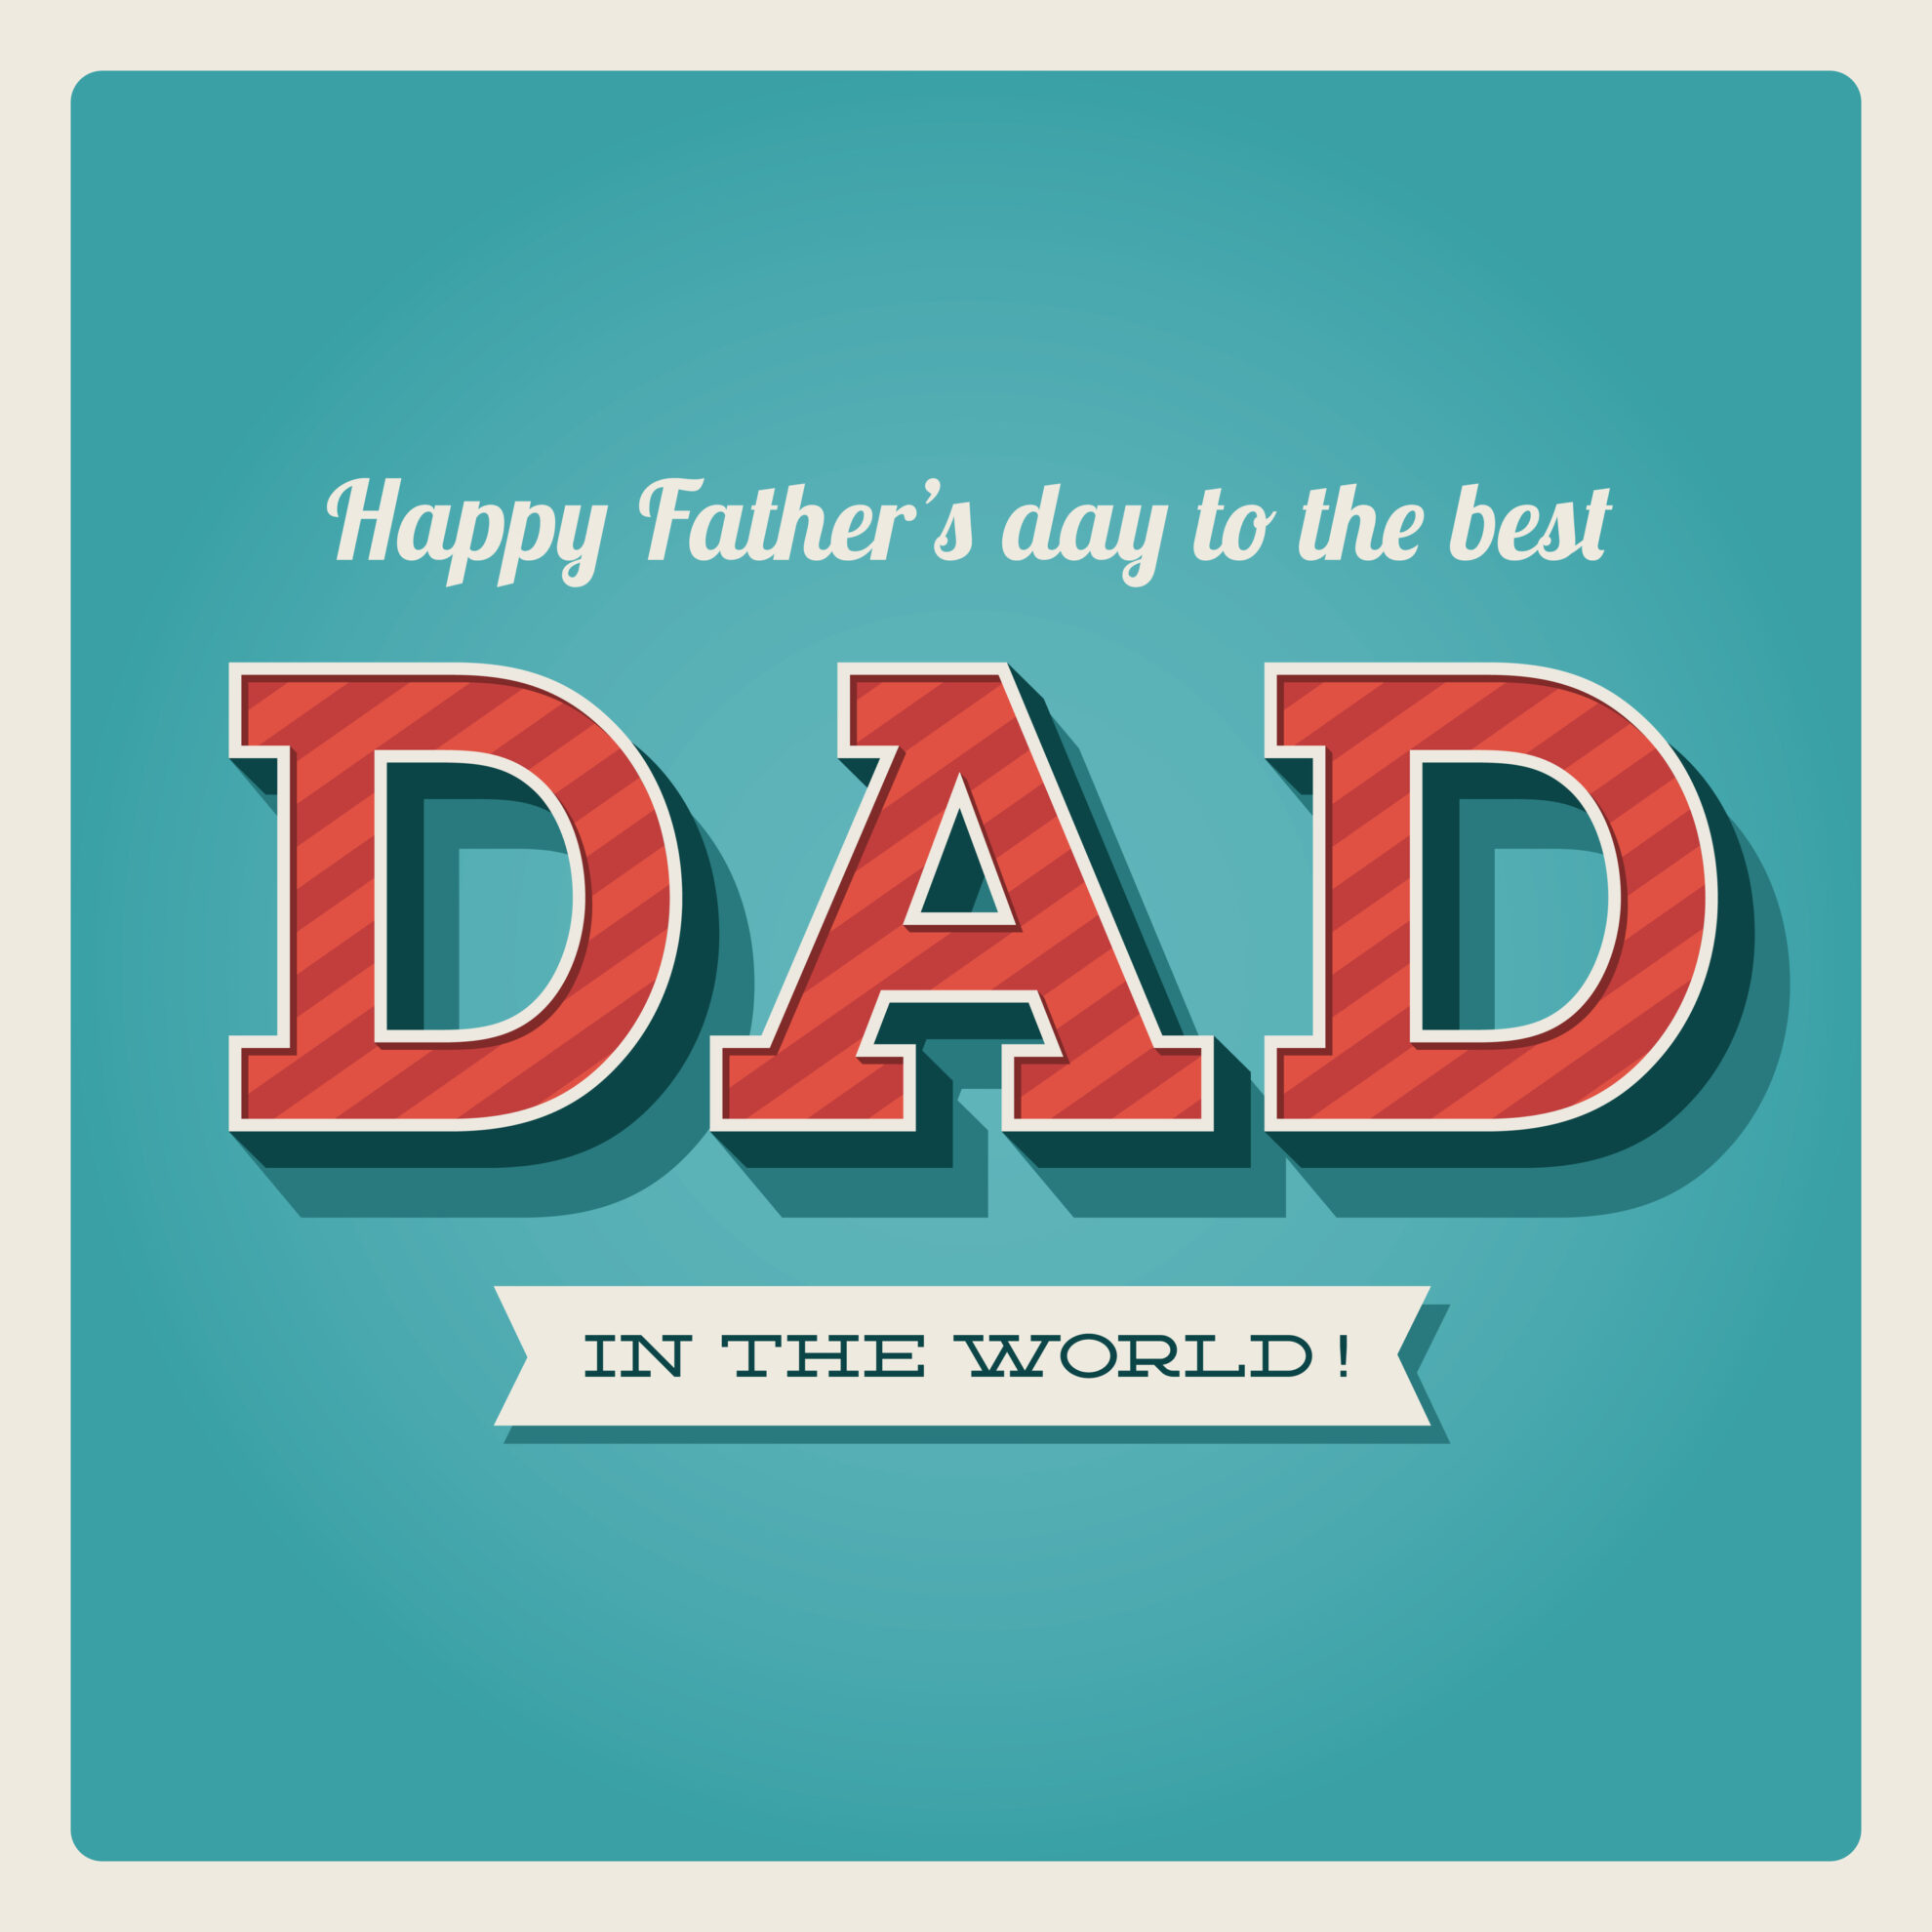 when is happy father day 2013